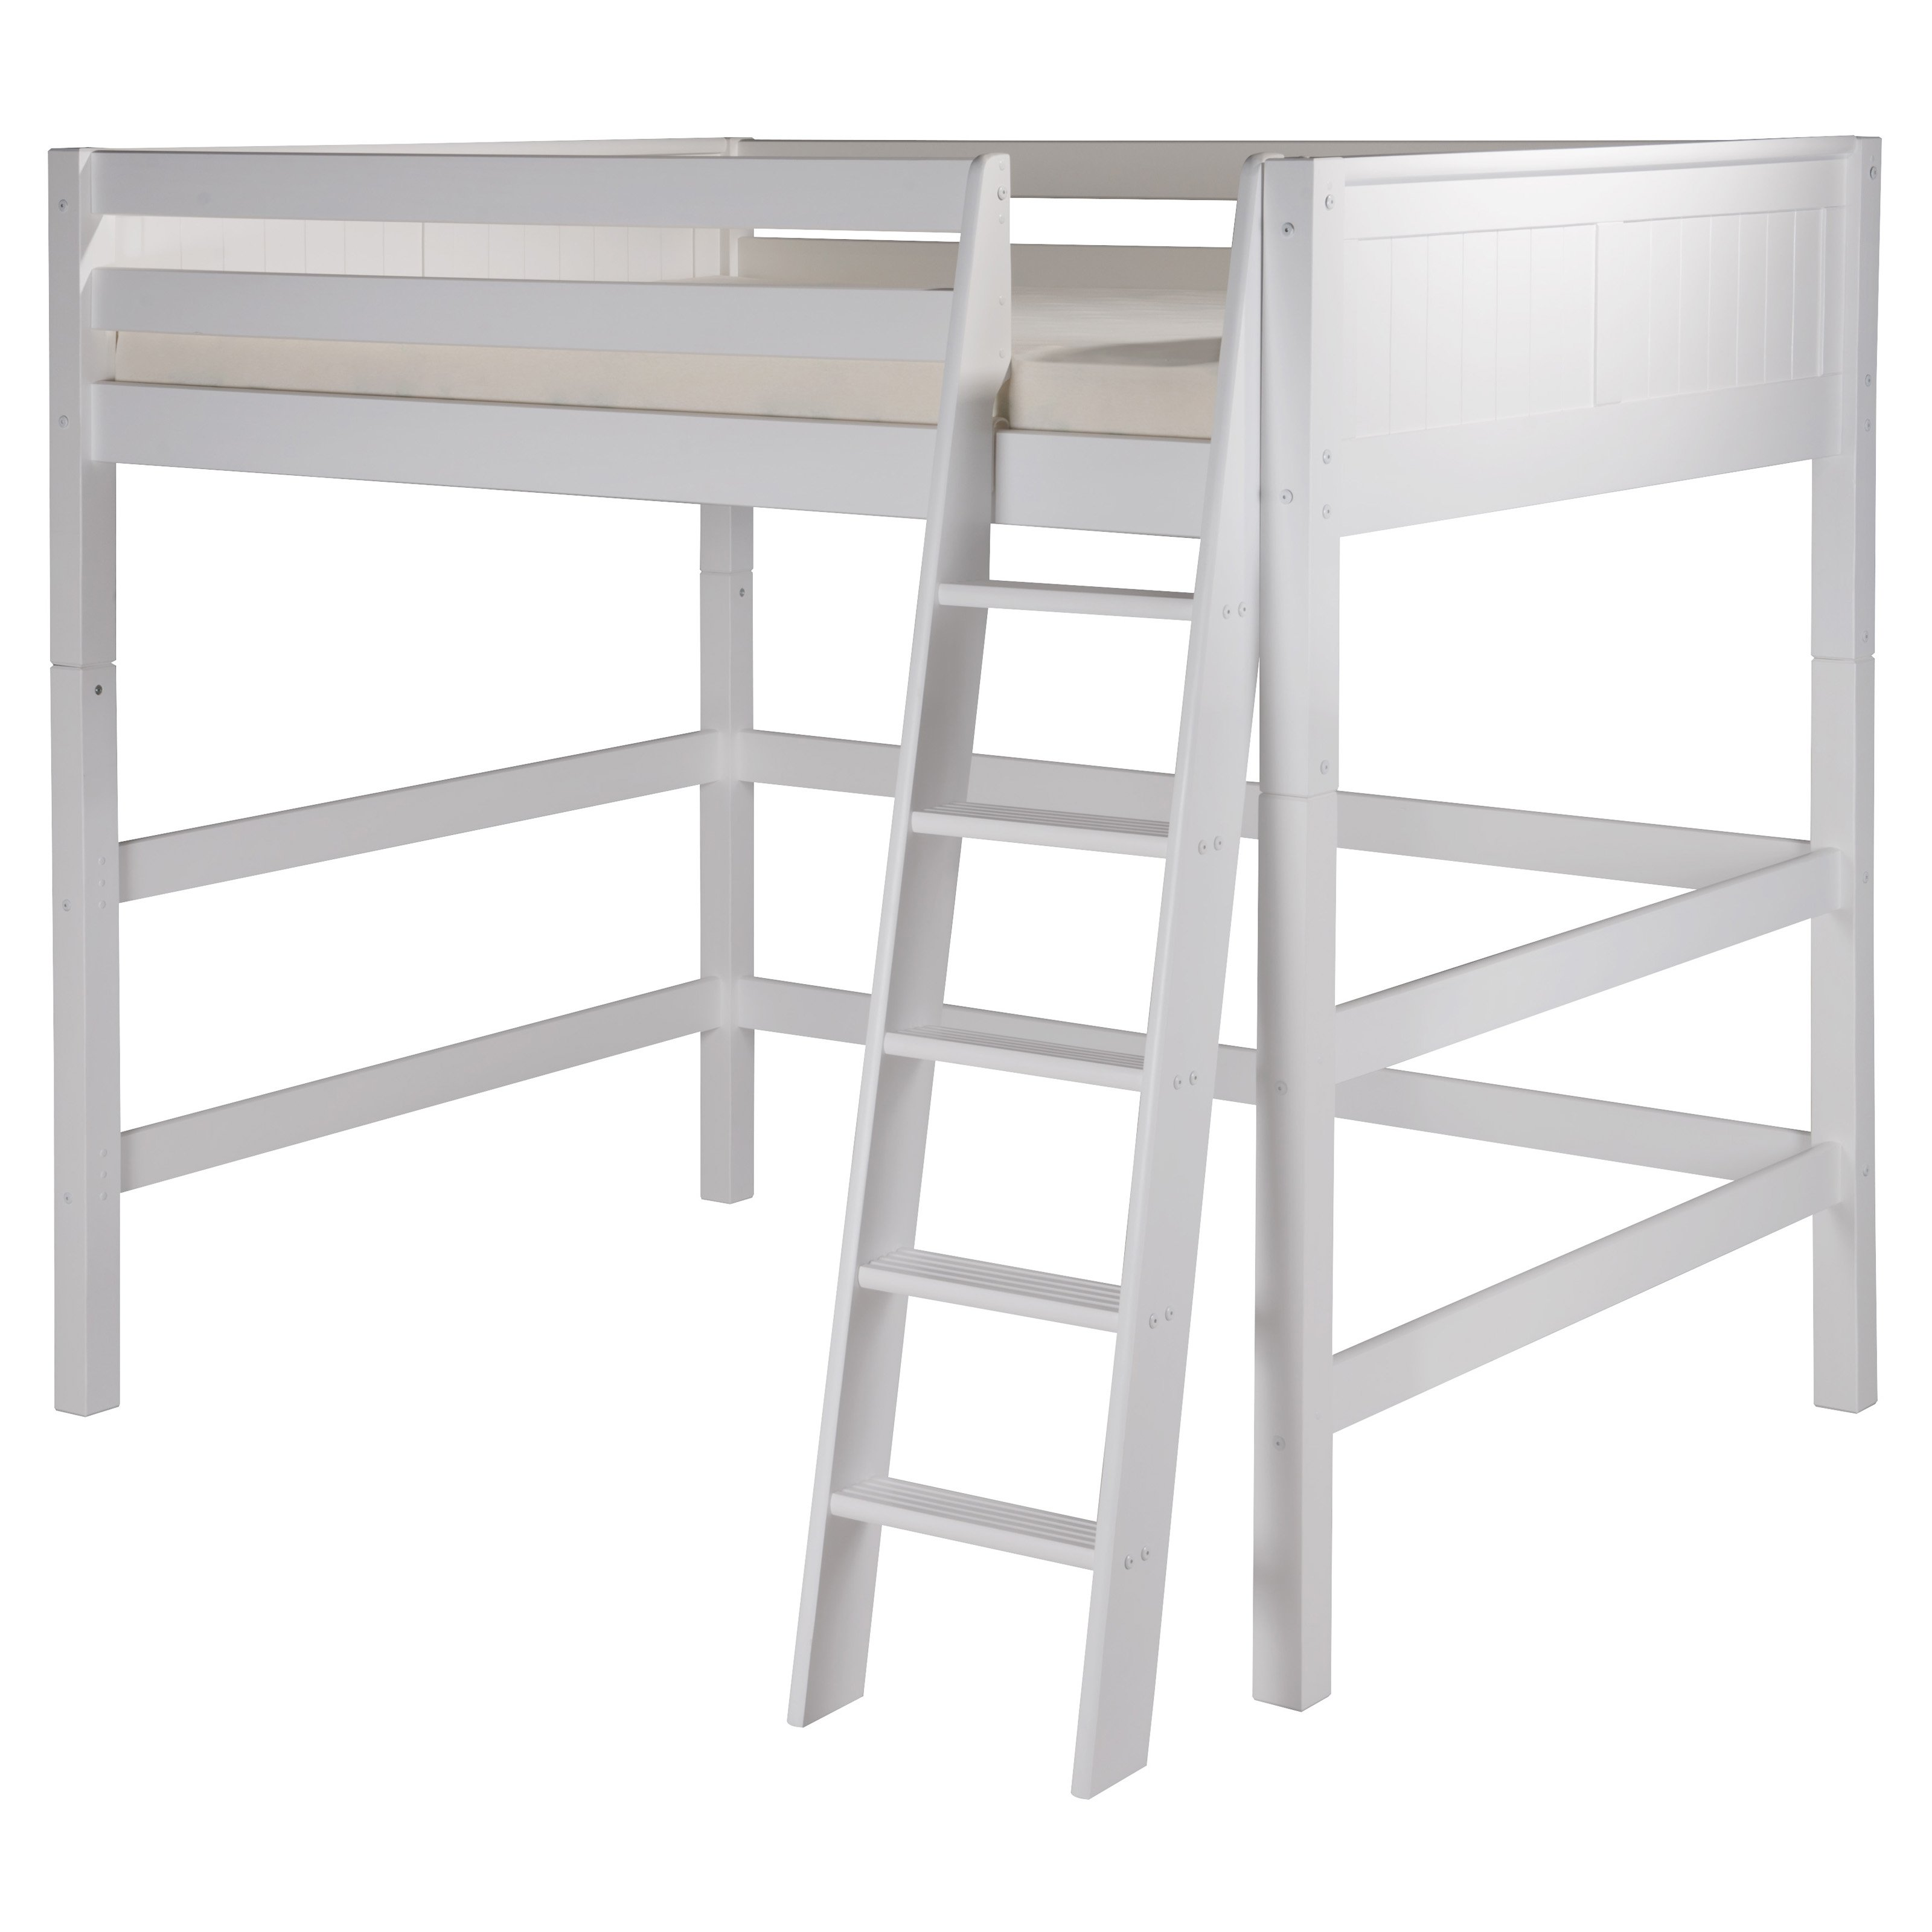 80.5 in. Eco-Friendly High Loft Bed with Panel Headboard